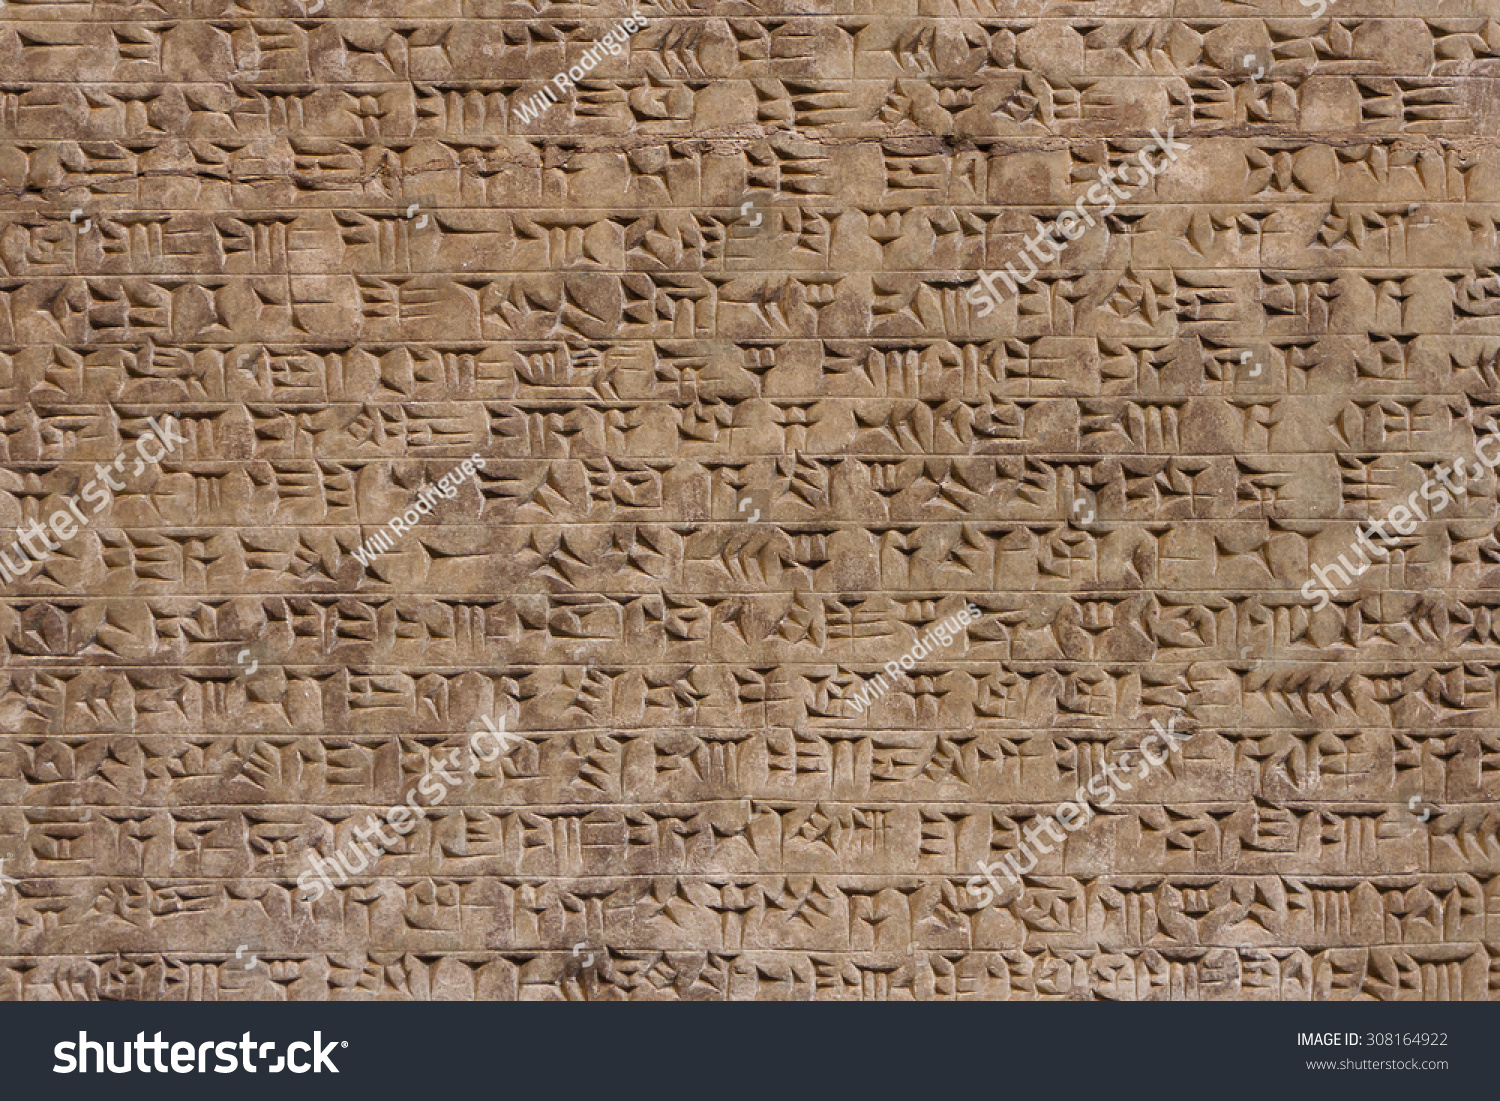 ancient mesopotamia writing Writing prompt: mesopotamia content/language goal: i will be able to write to identify how mesopotamia's history changed over time learning target.